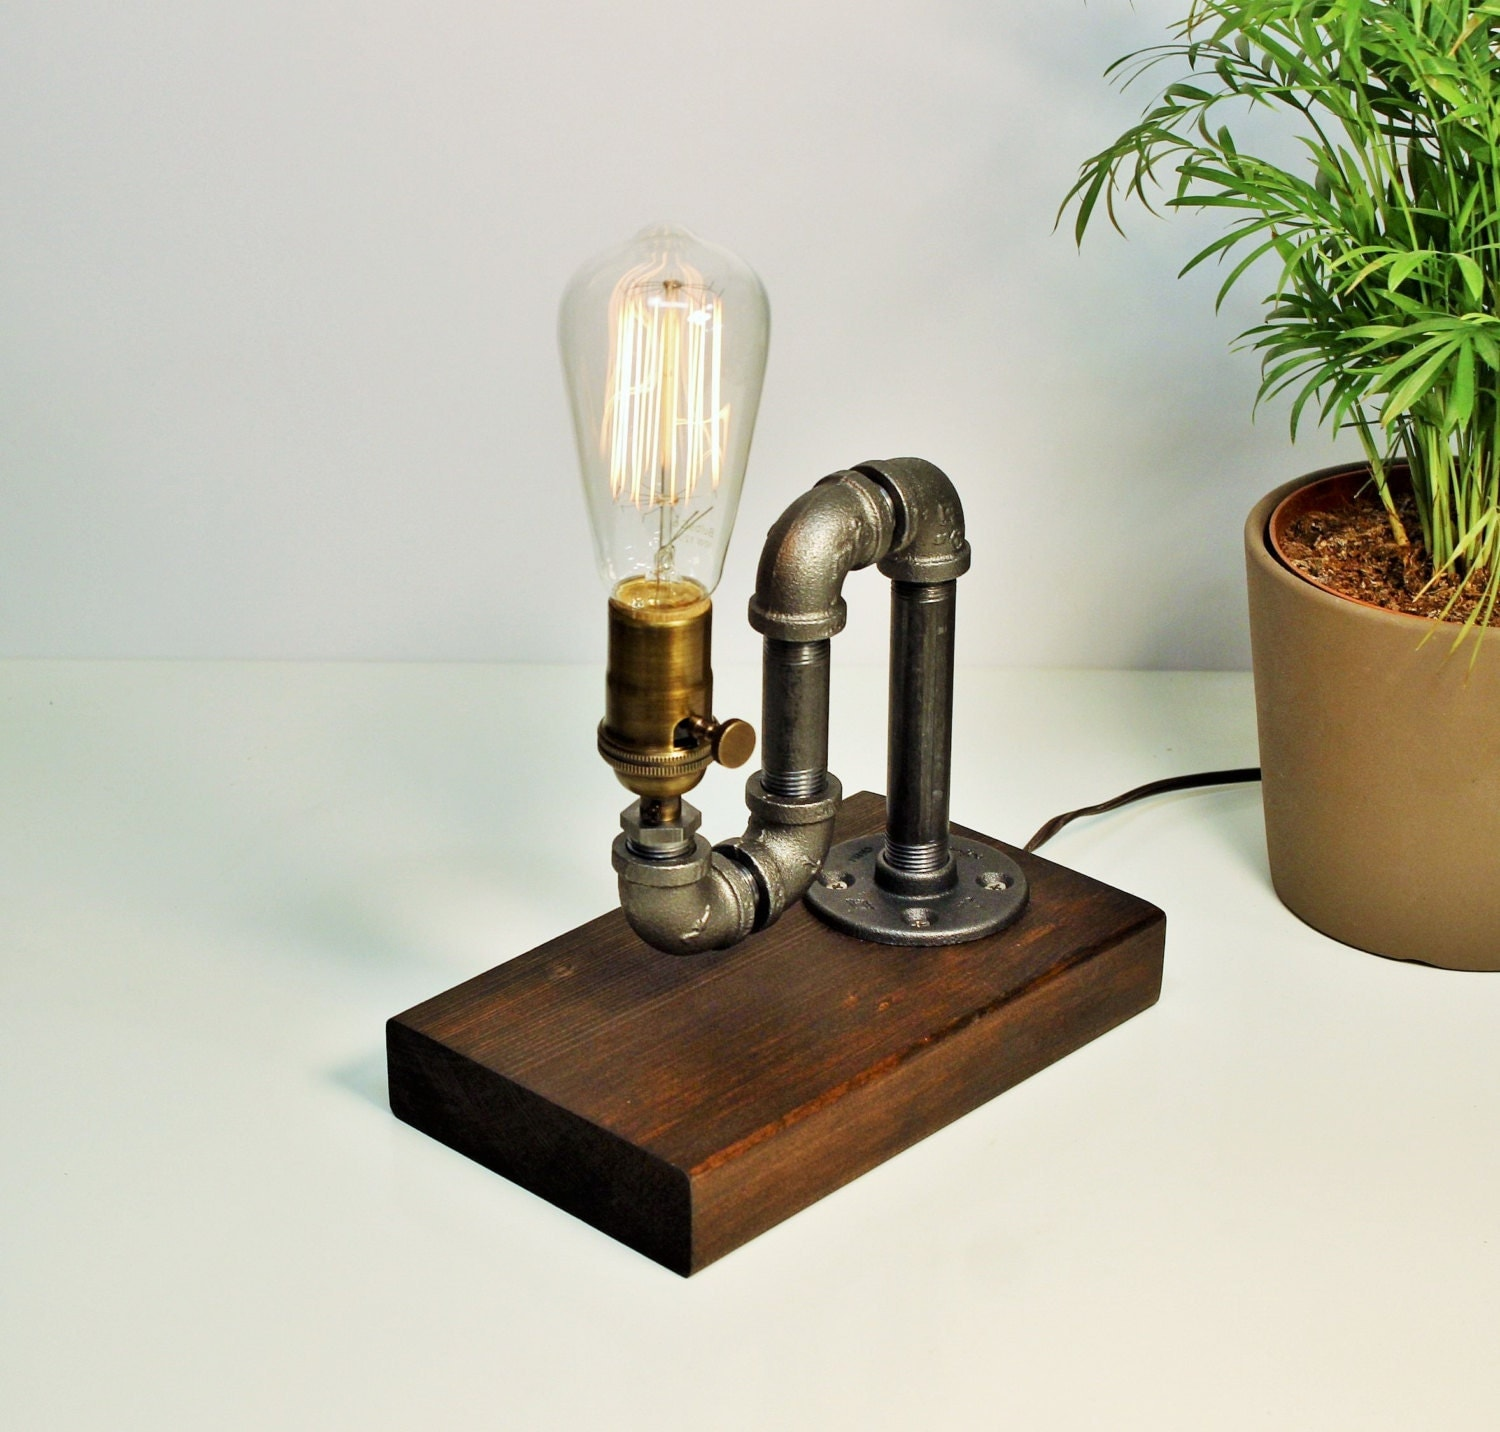 Industrial Pipe Light Lamp Unique Table Light Lamp-Steampunk